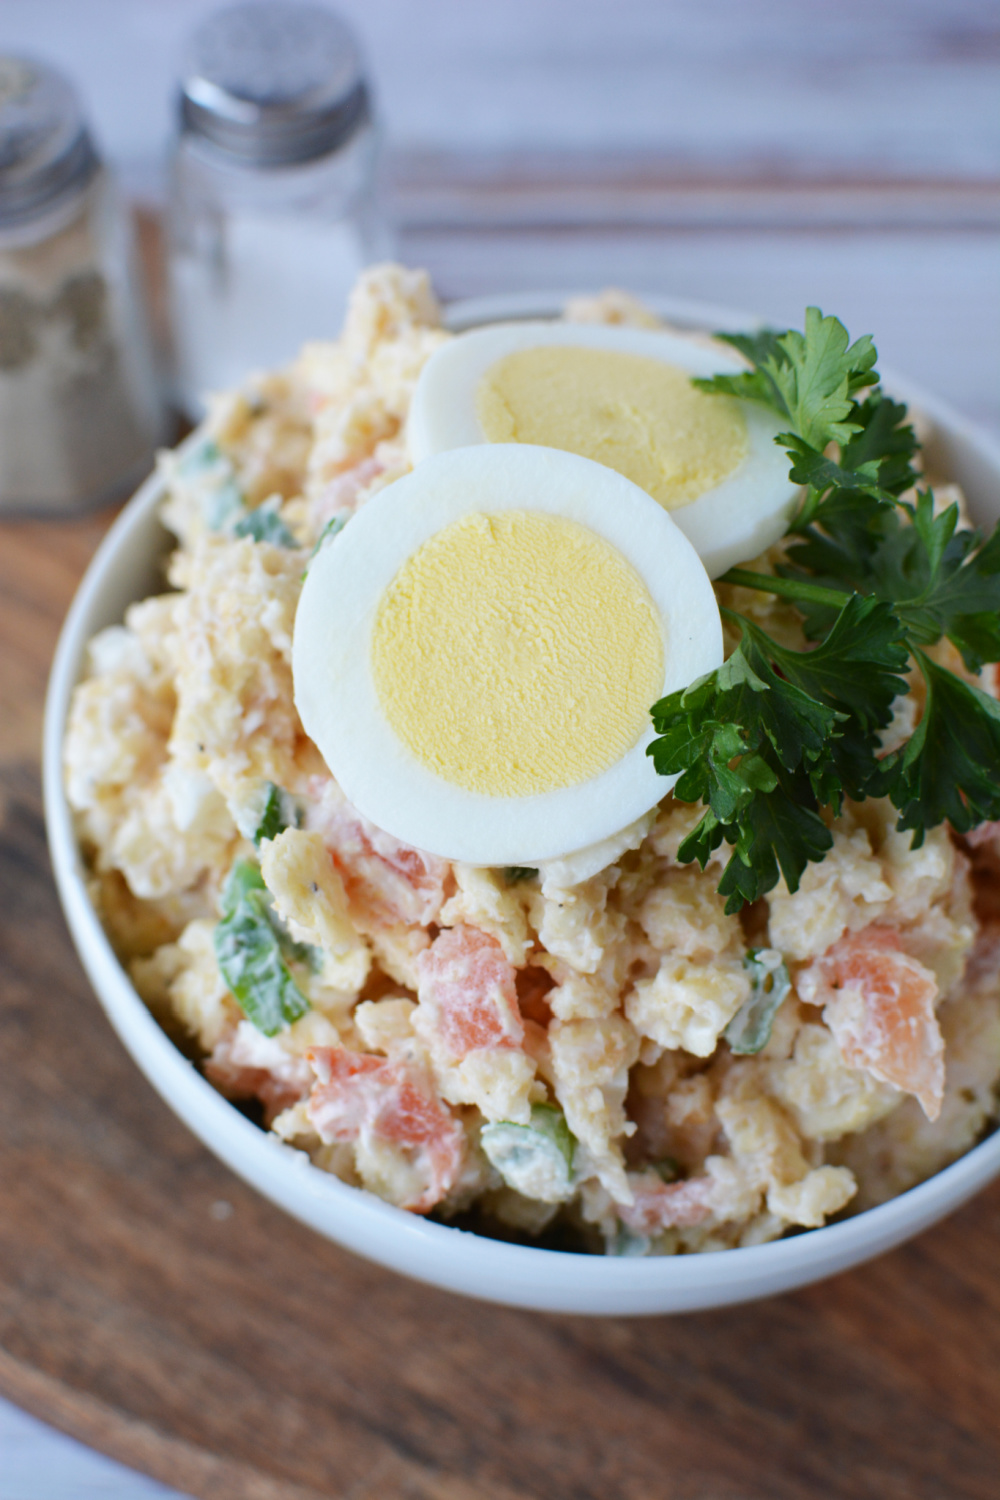 Tomato Cracker Salad topped with egg